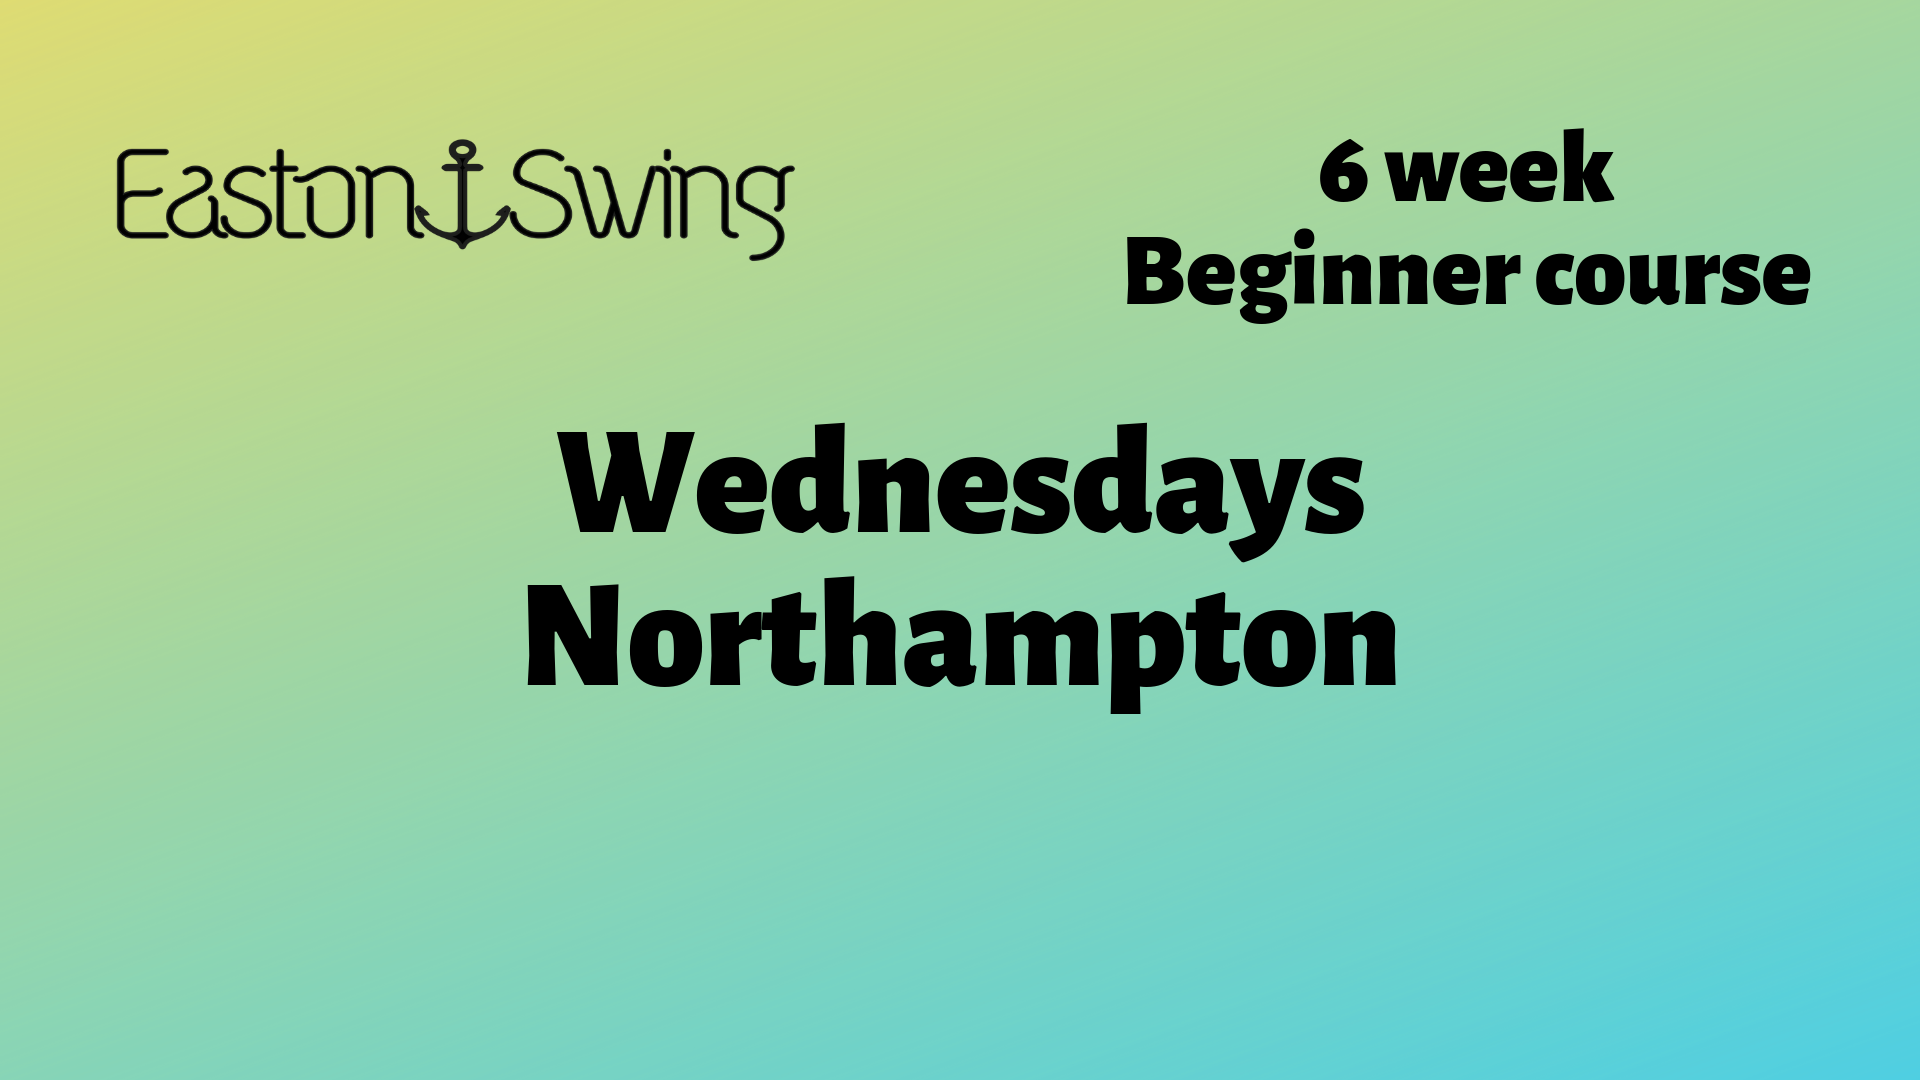 Northampton West Coast Swing, yellow to green background with EastonSwing company Logo plus text describing beginner courses